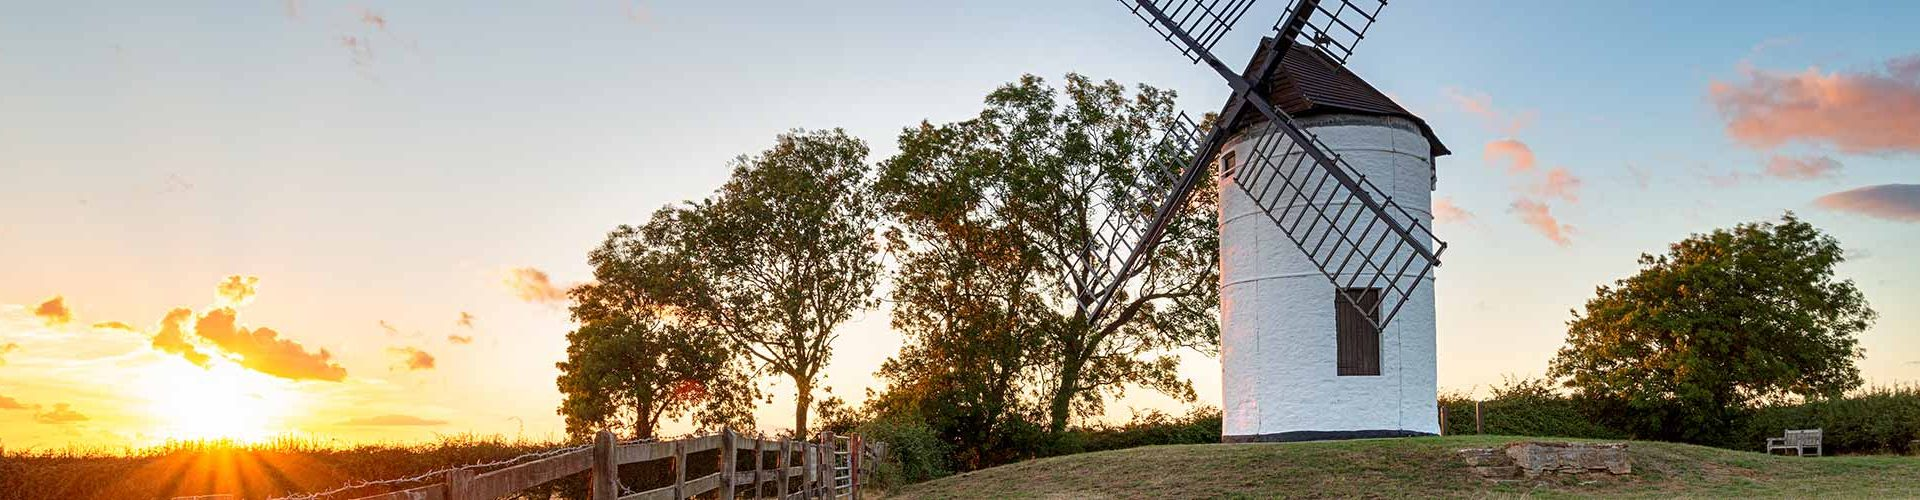 Sunset over Ashton Windmill at Wedmore in the Somerset countryside